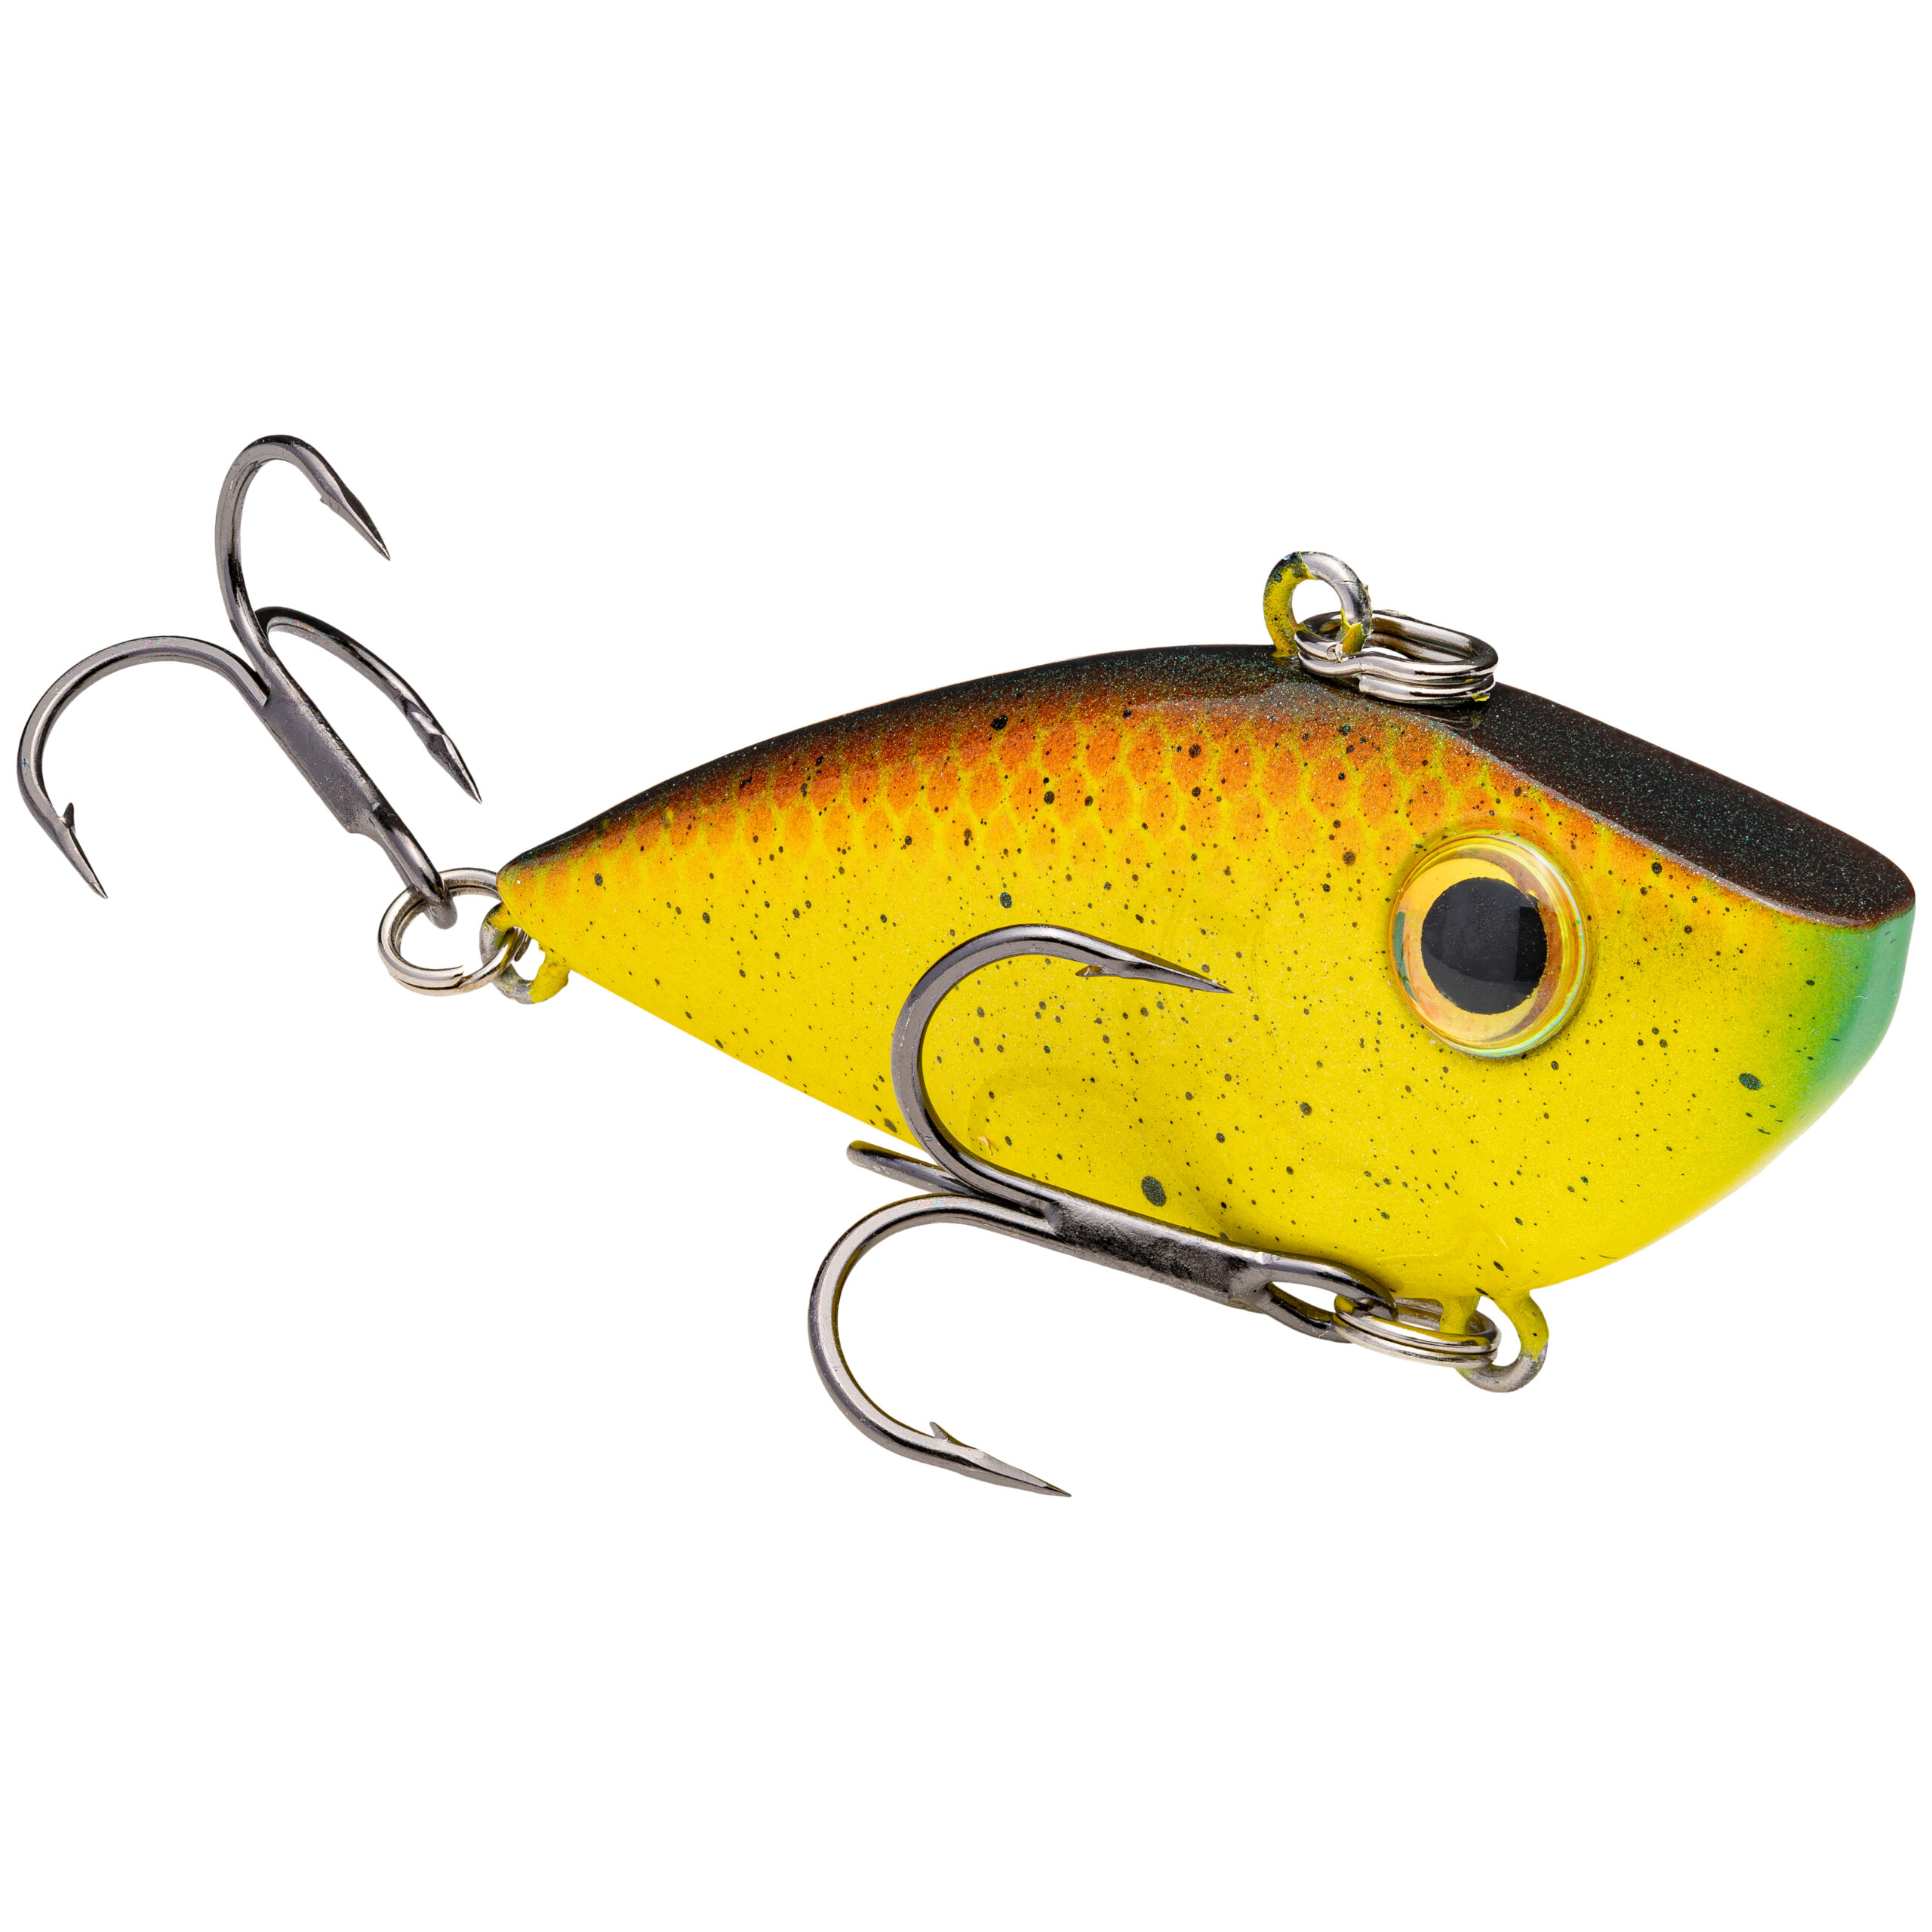 Strike King Lures – Crankbaits – Lipless Rattle Trap – Red Eyed Shad - 1/4oz - REYESD14-467 - Bully